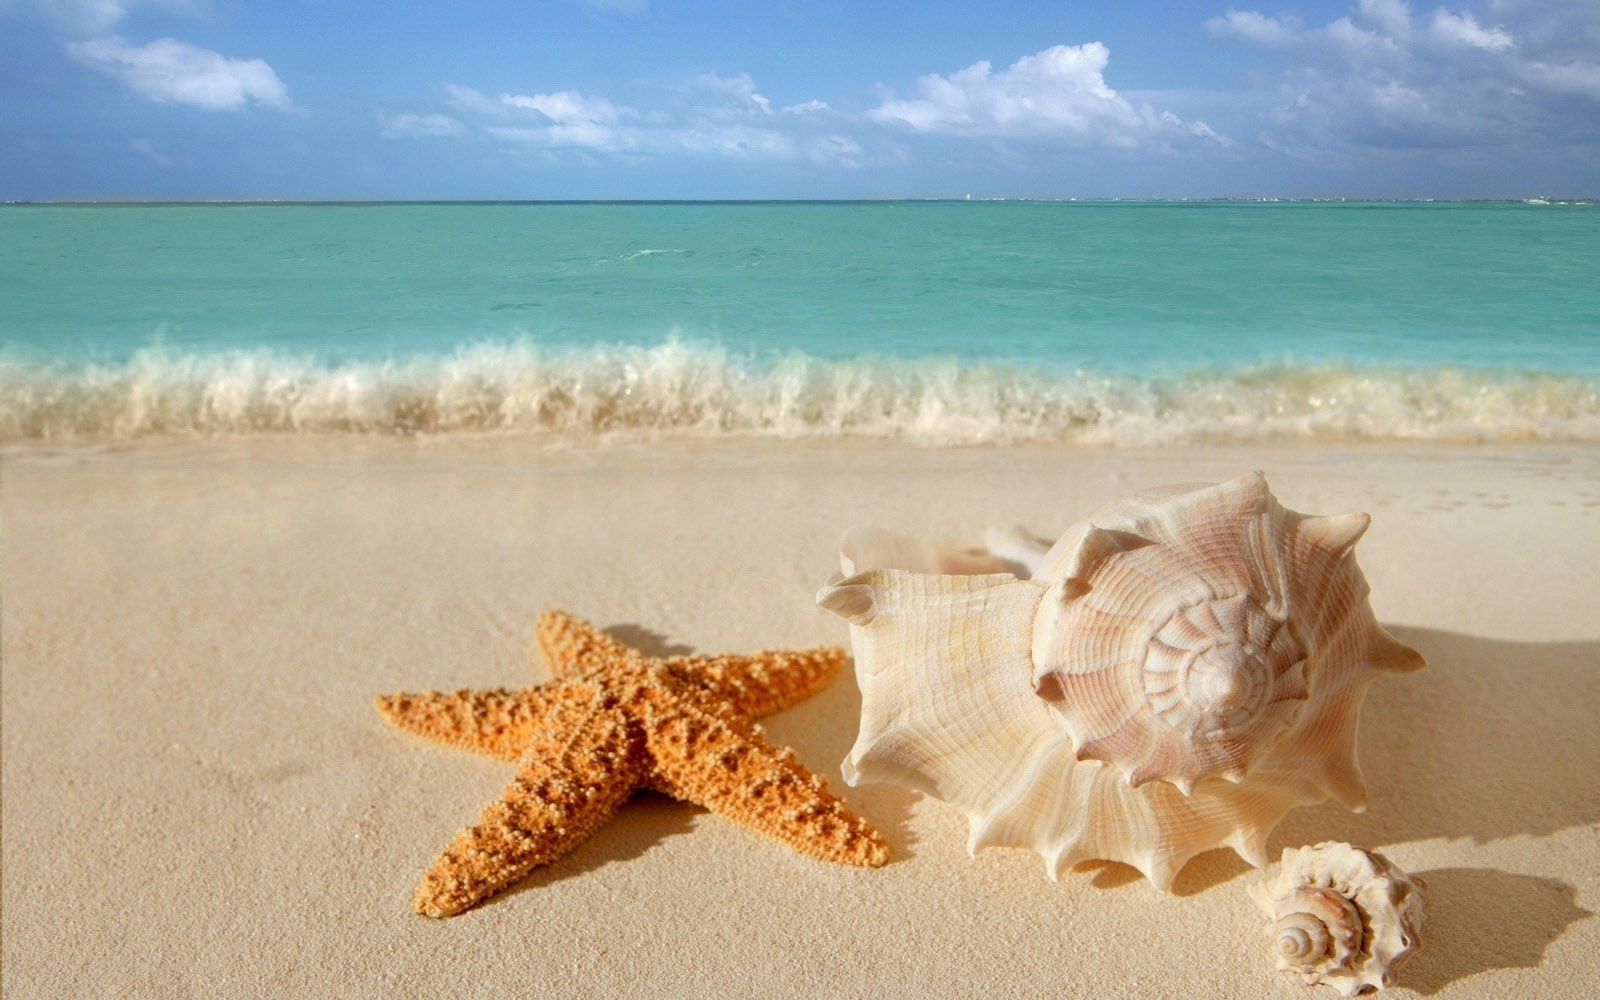 Sea Shells on a Beach